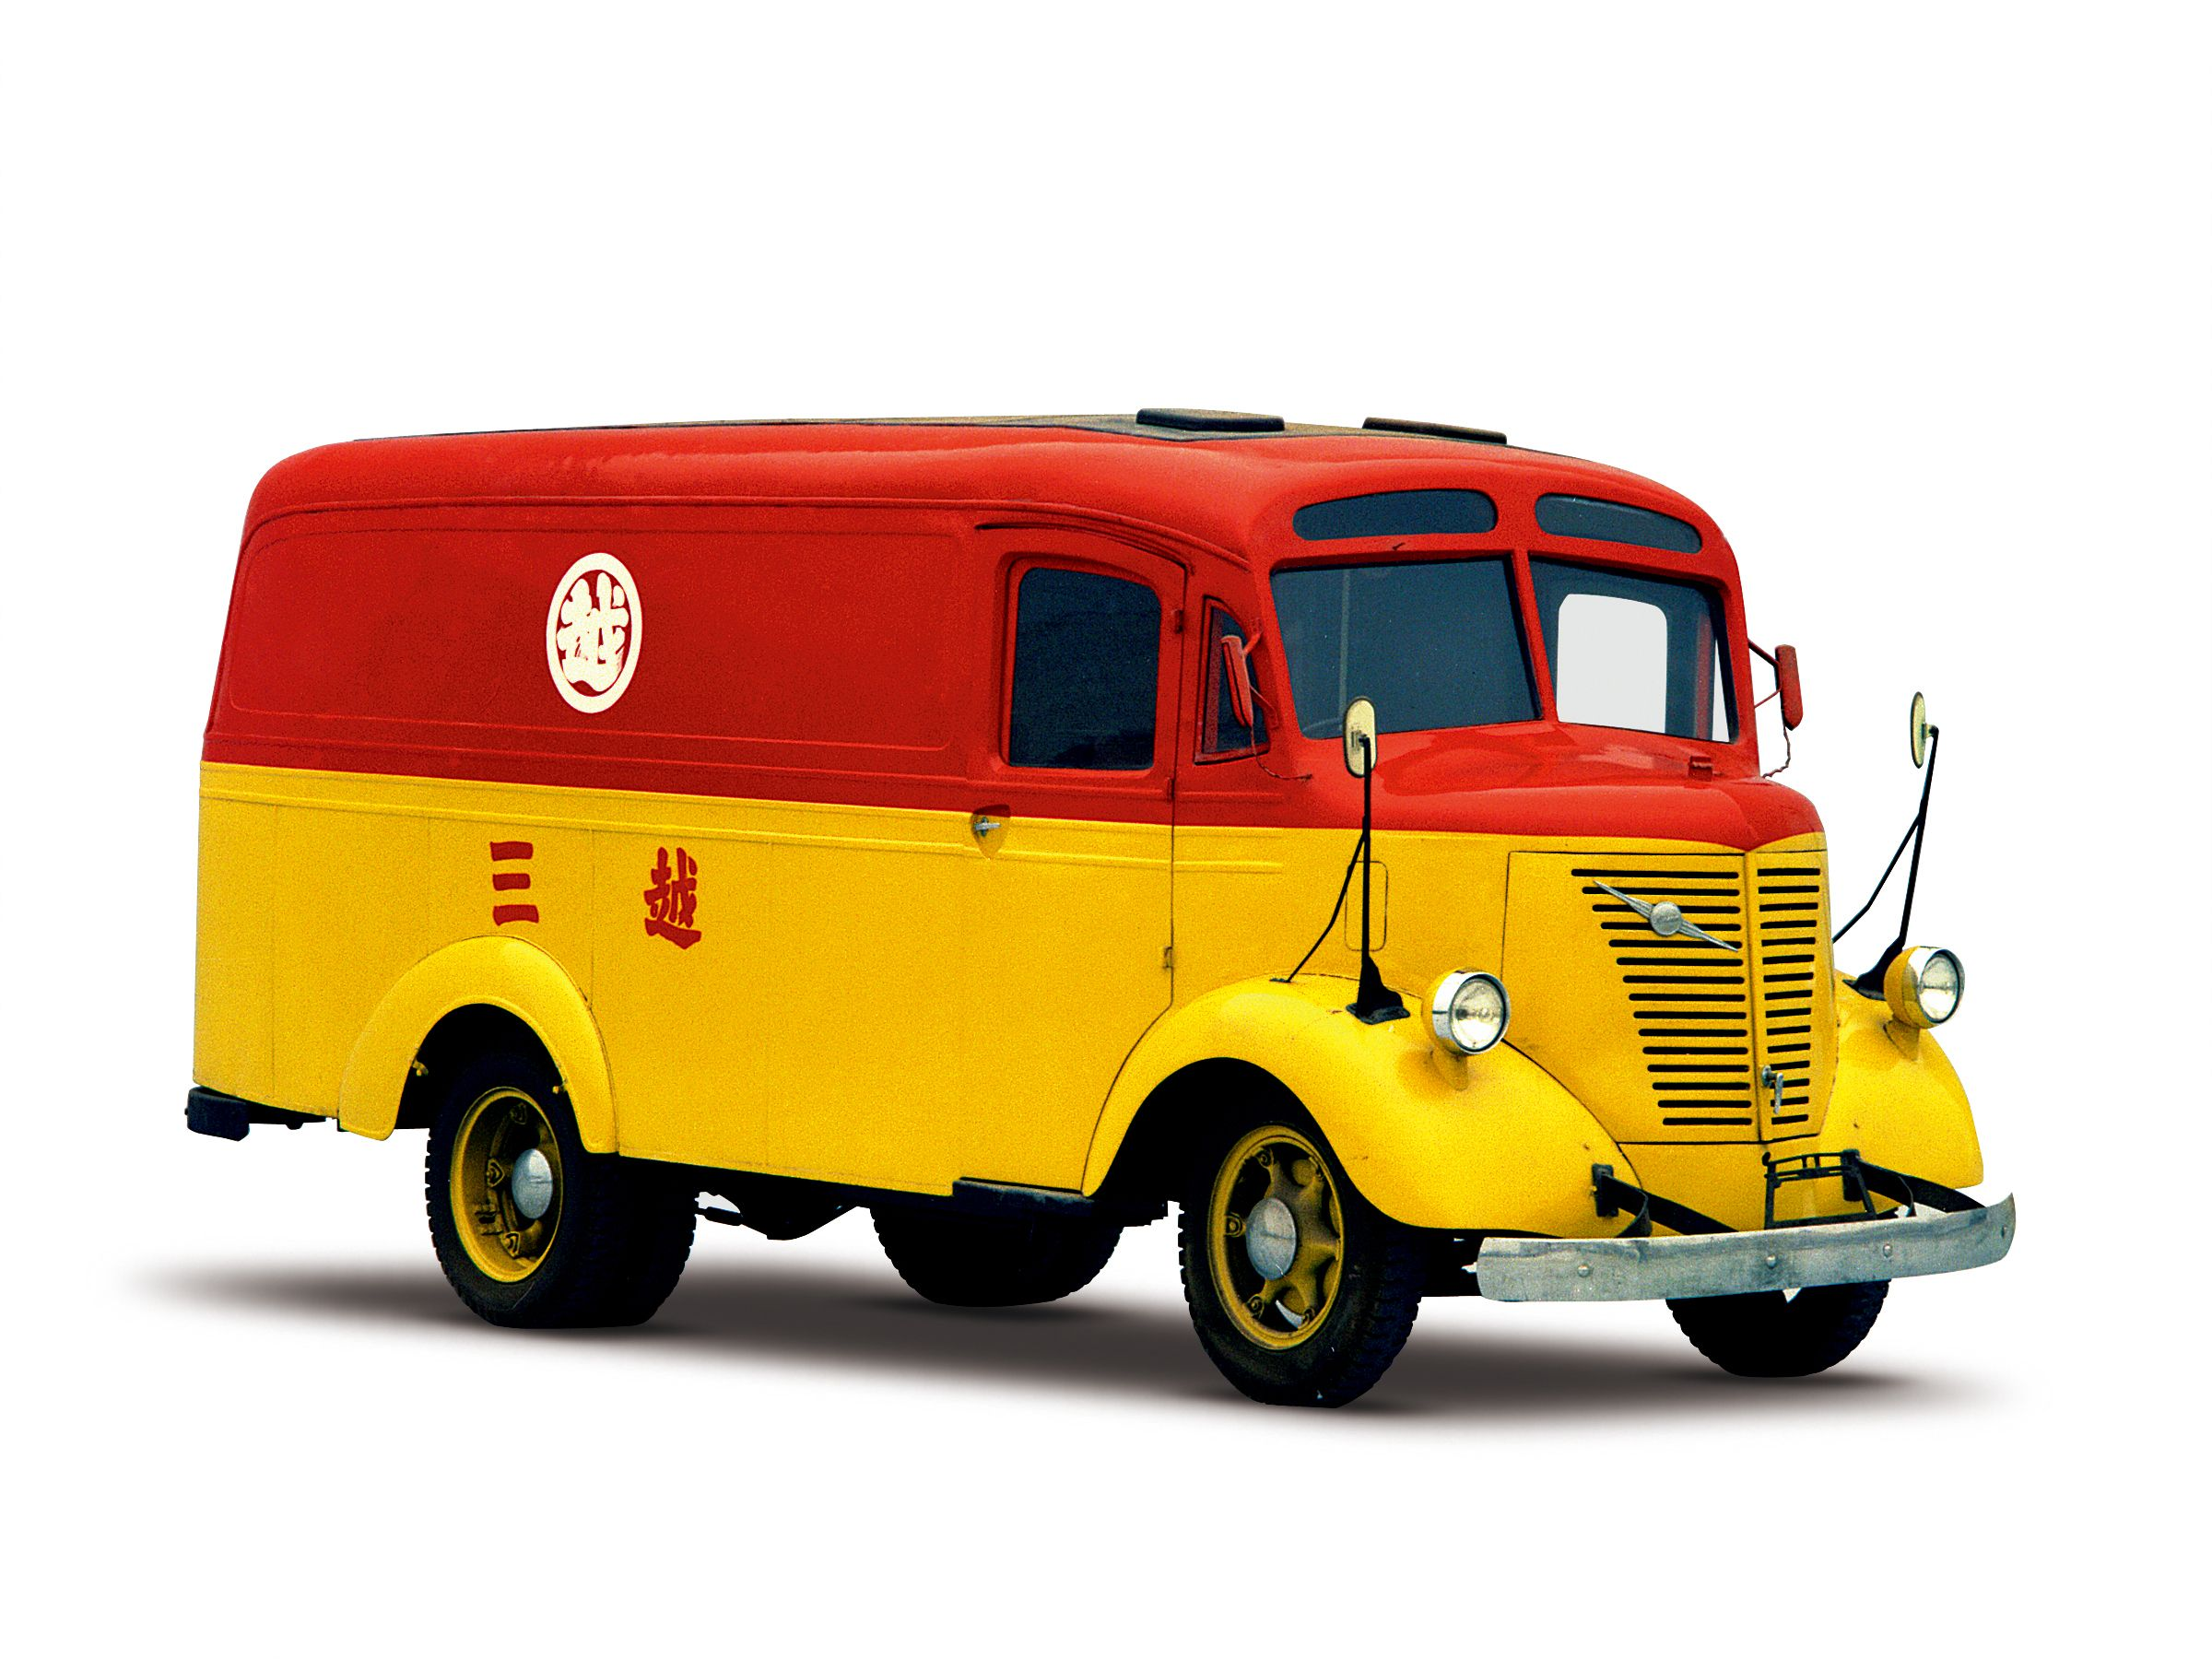 1937 Nissan Van | Cars and stuff | Pinterest | Nissan, Vehicle and Cars